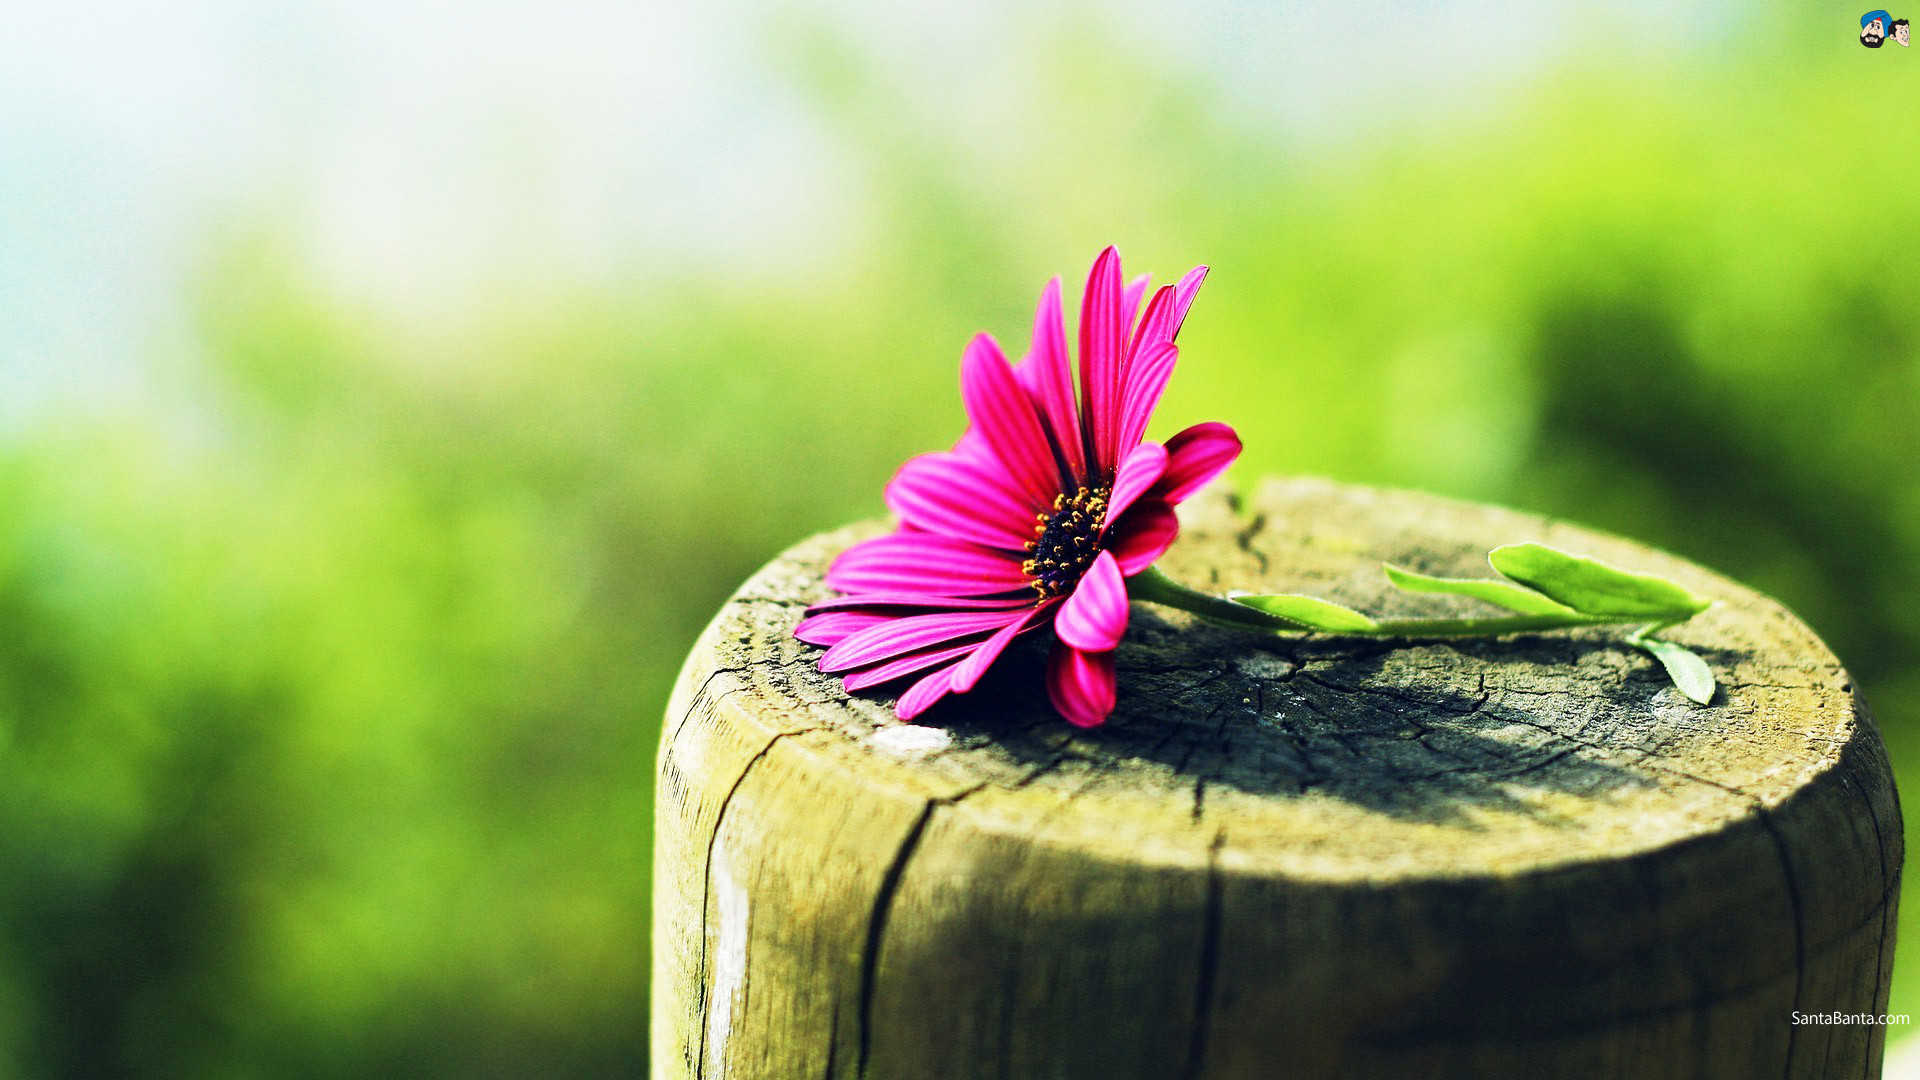 Res: 1920x1080, 4. flower-photography-wallpaper7-600x338